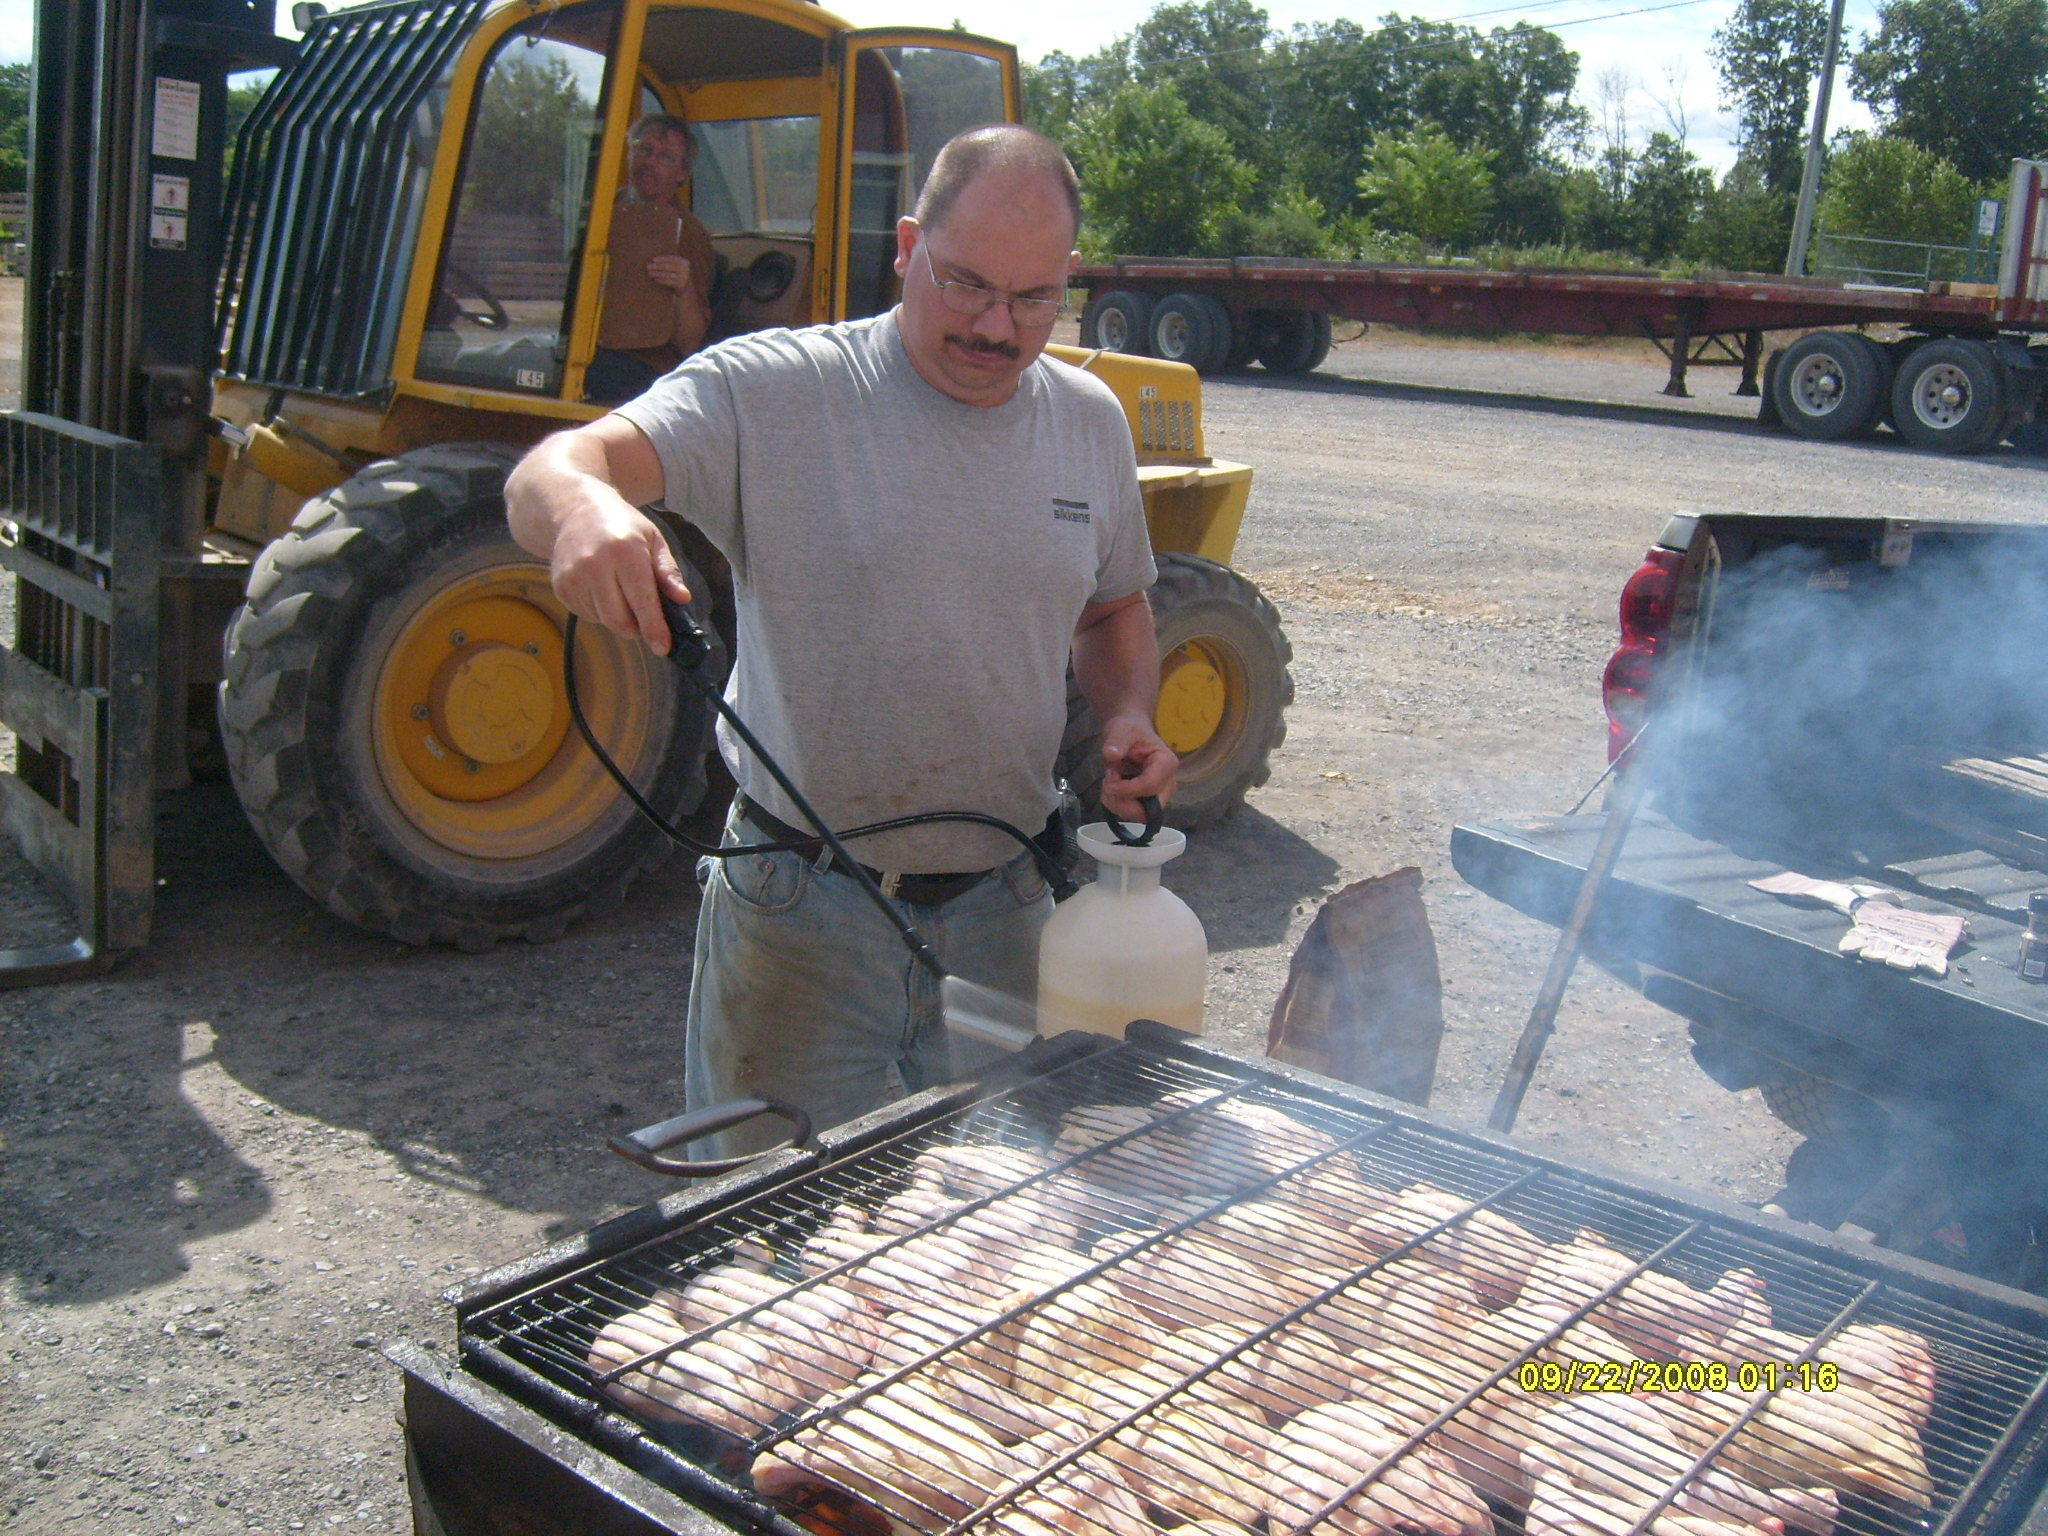 Randy grilling BBQ chicken on nice summer day, employee spotlight, Randy Beachel, Timberhaven Log Homes, log homes, log cabin homes, log cabins, post and beam homes, timberframe homes, timber frame homes, laminated logs, engineered logs, floor plan designs, kiln dried logs